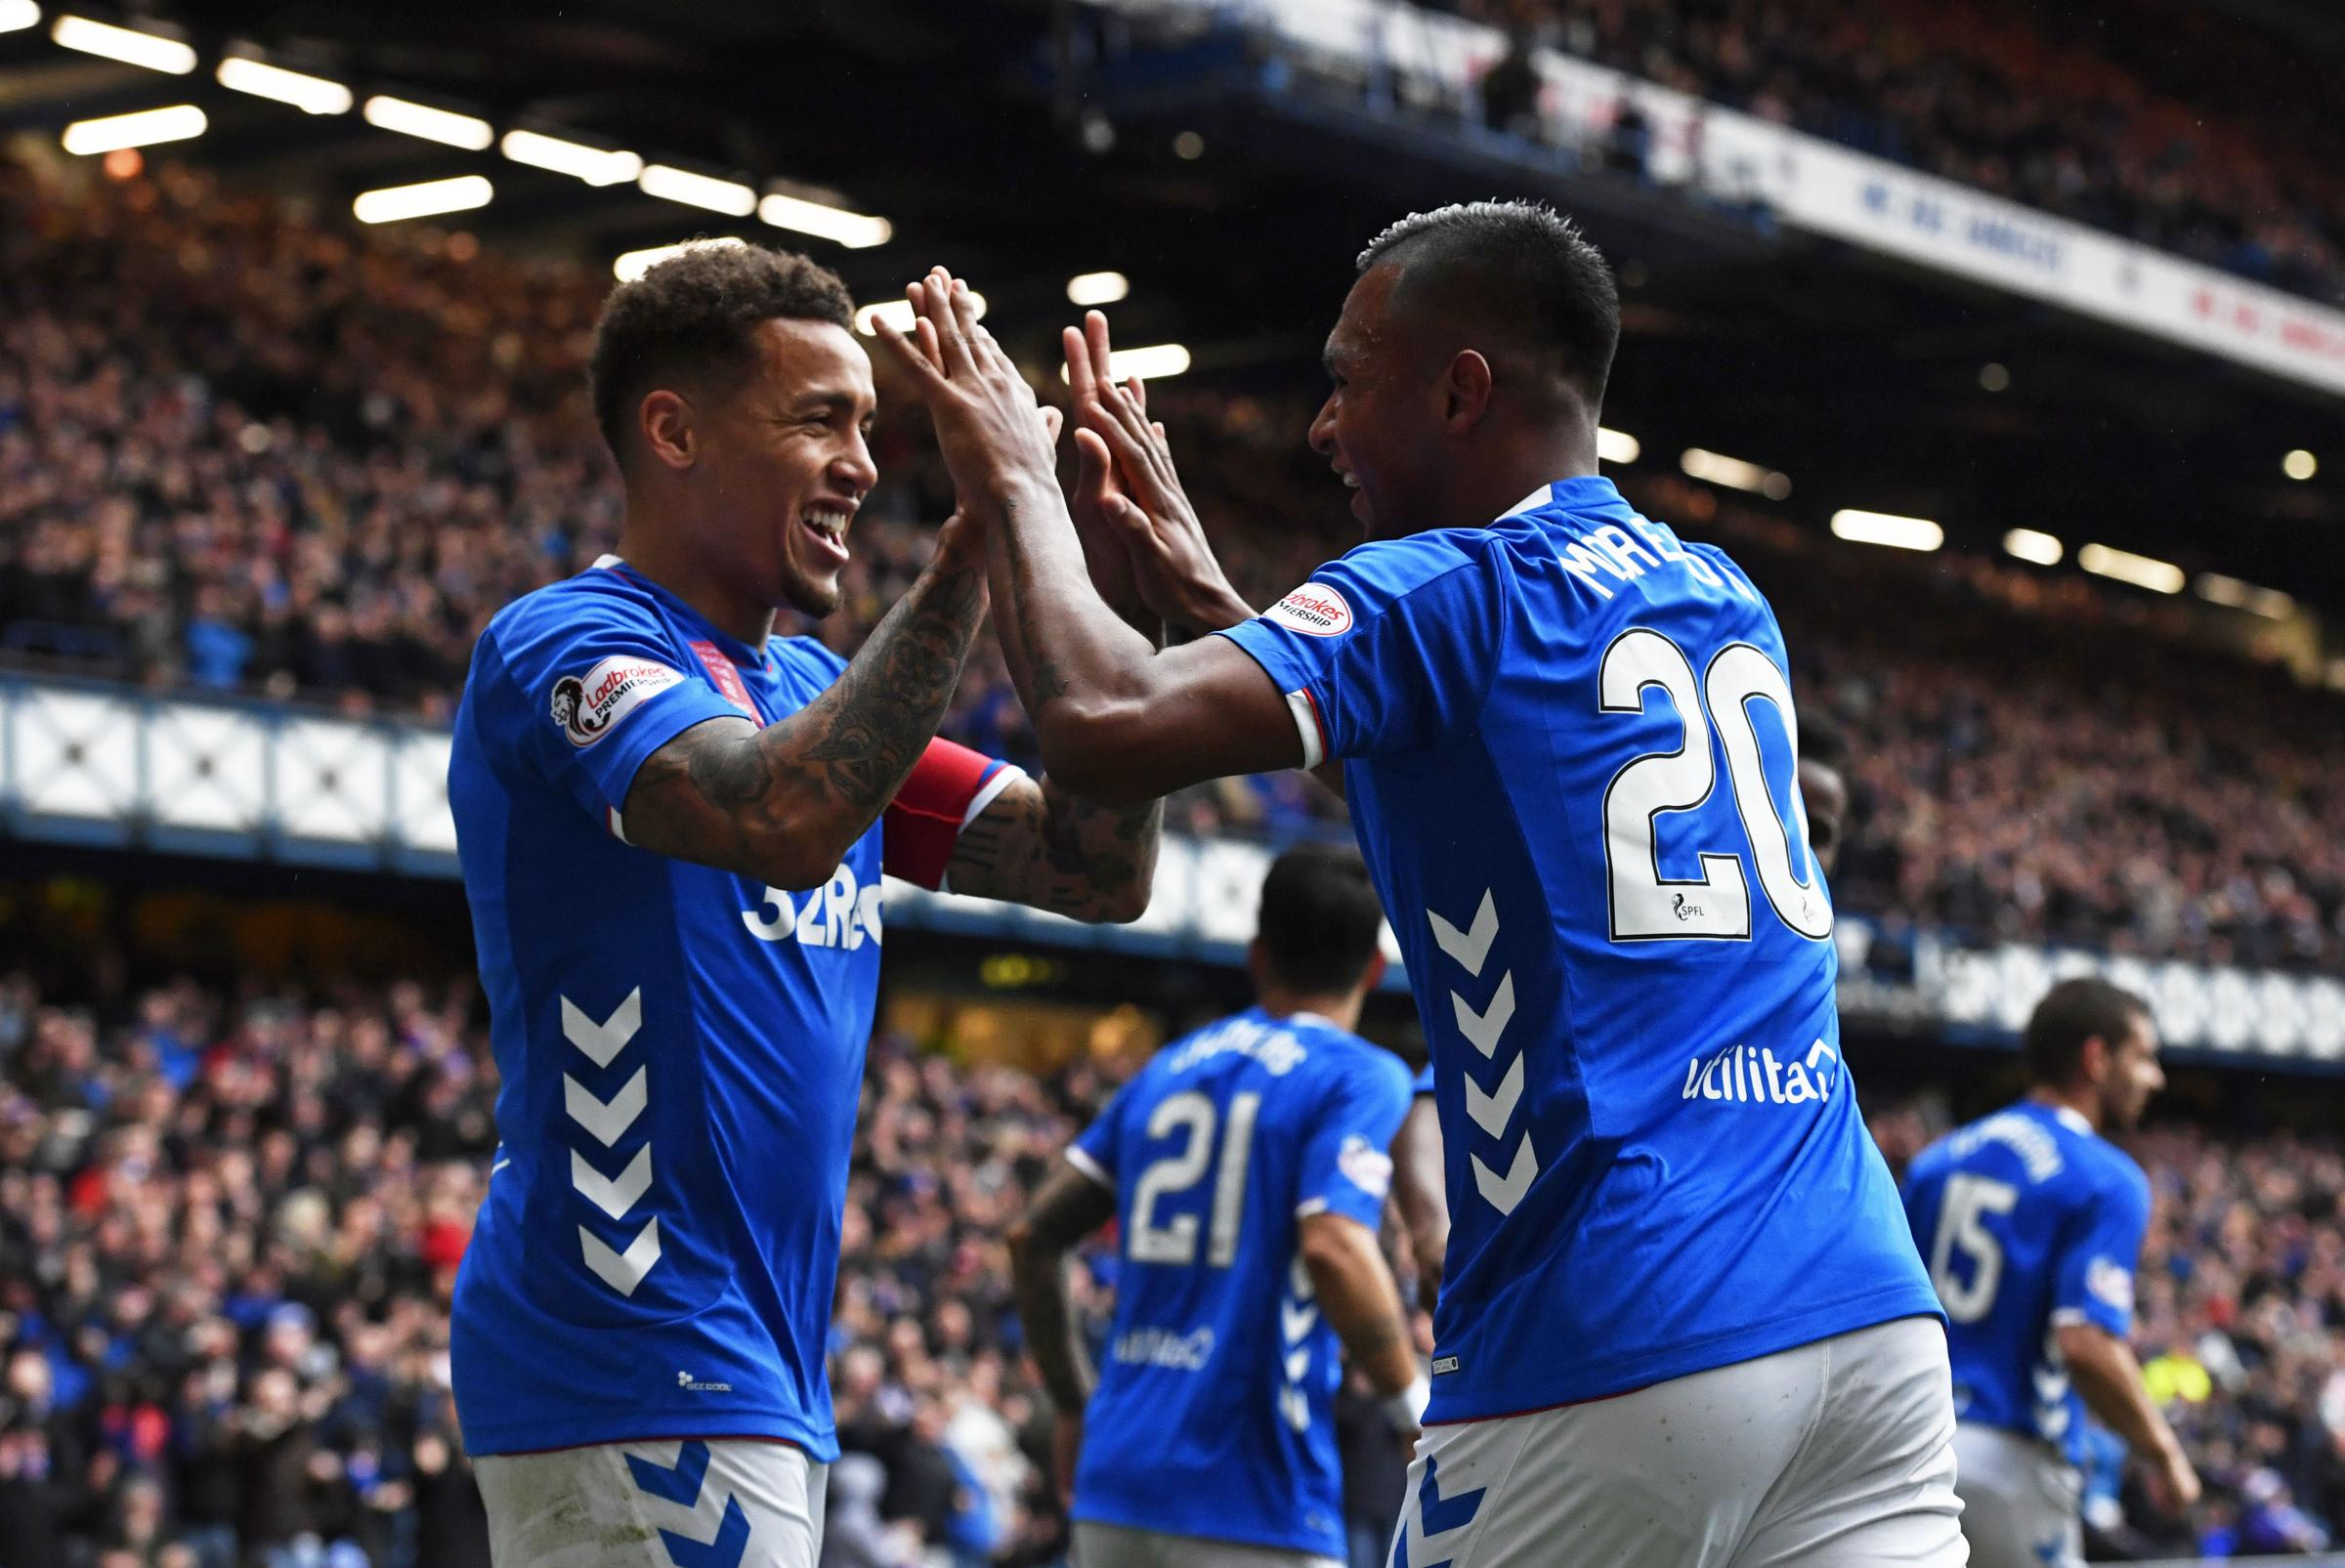 07/10/18 LADBROKES PREMIERSHIP.RANGERS v HEARTS.IBROX - GLASGOW.Rangers' Alfredo Morelos (R) celebrates his goal with James Tavernier.